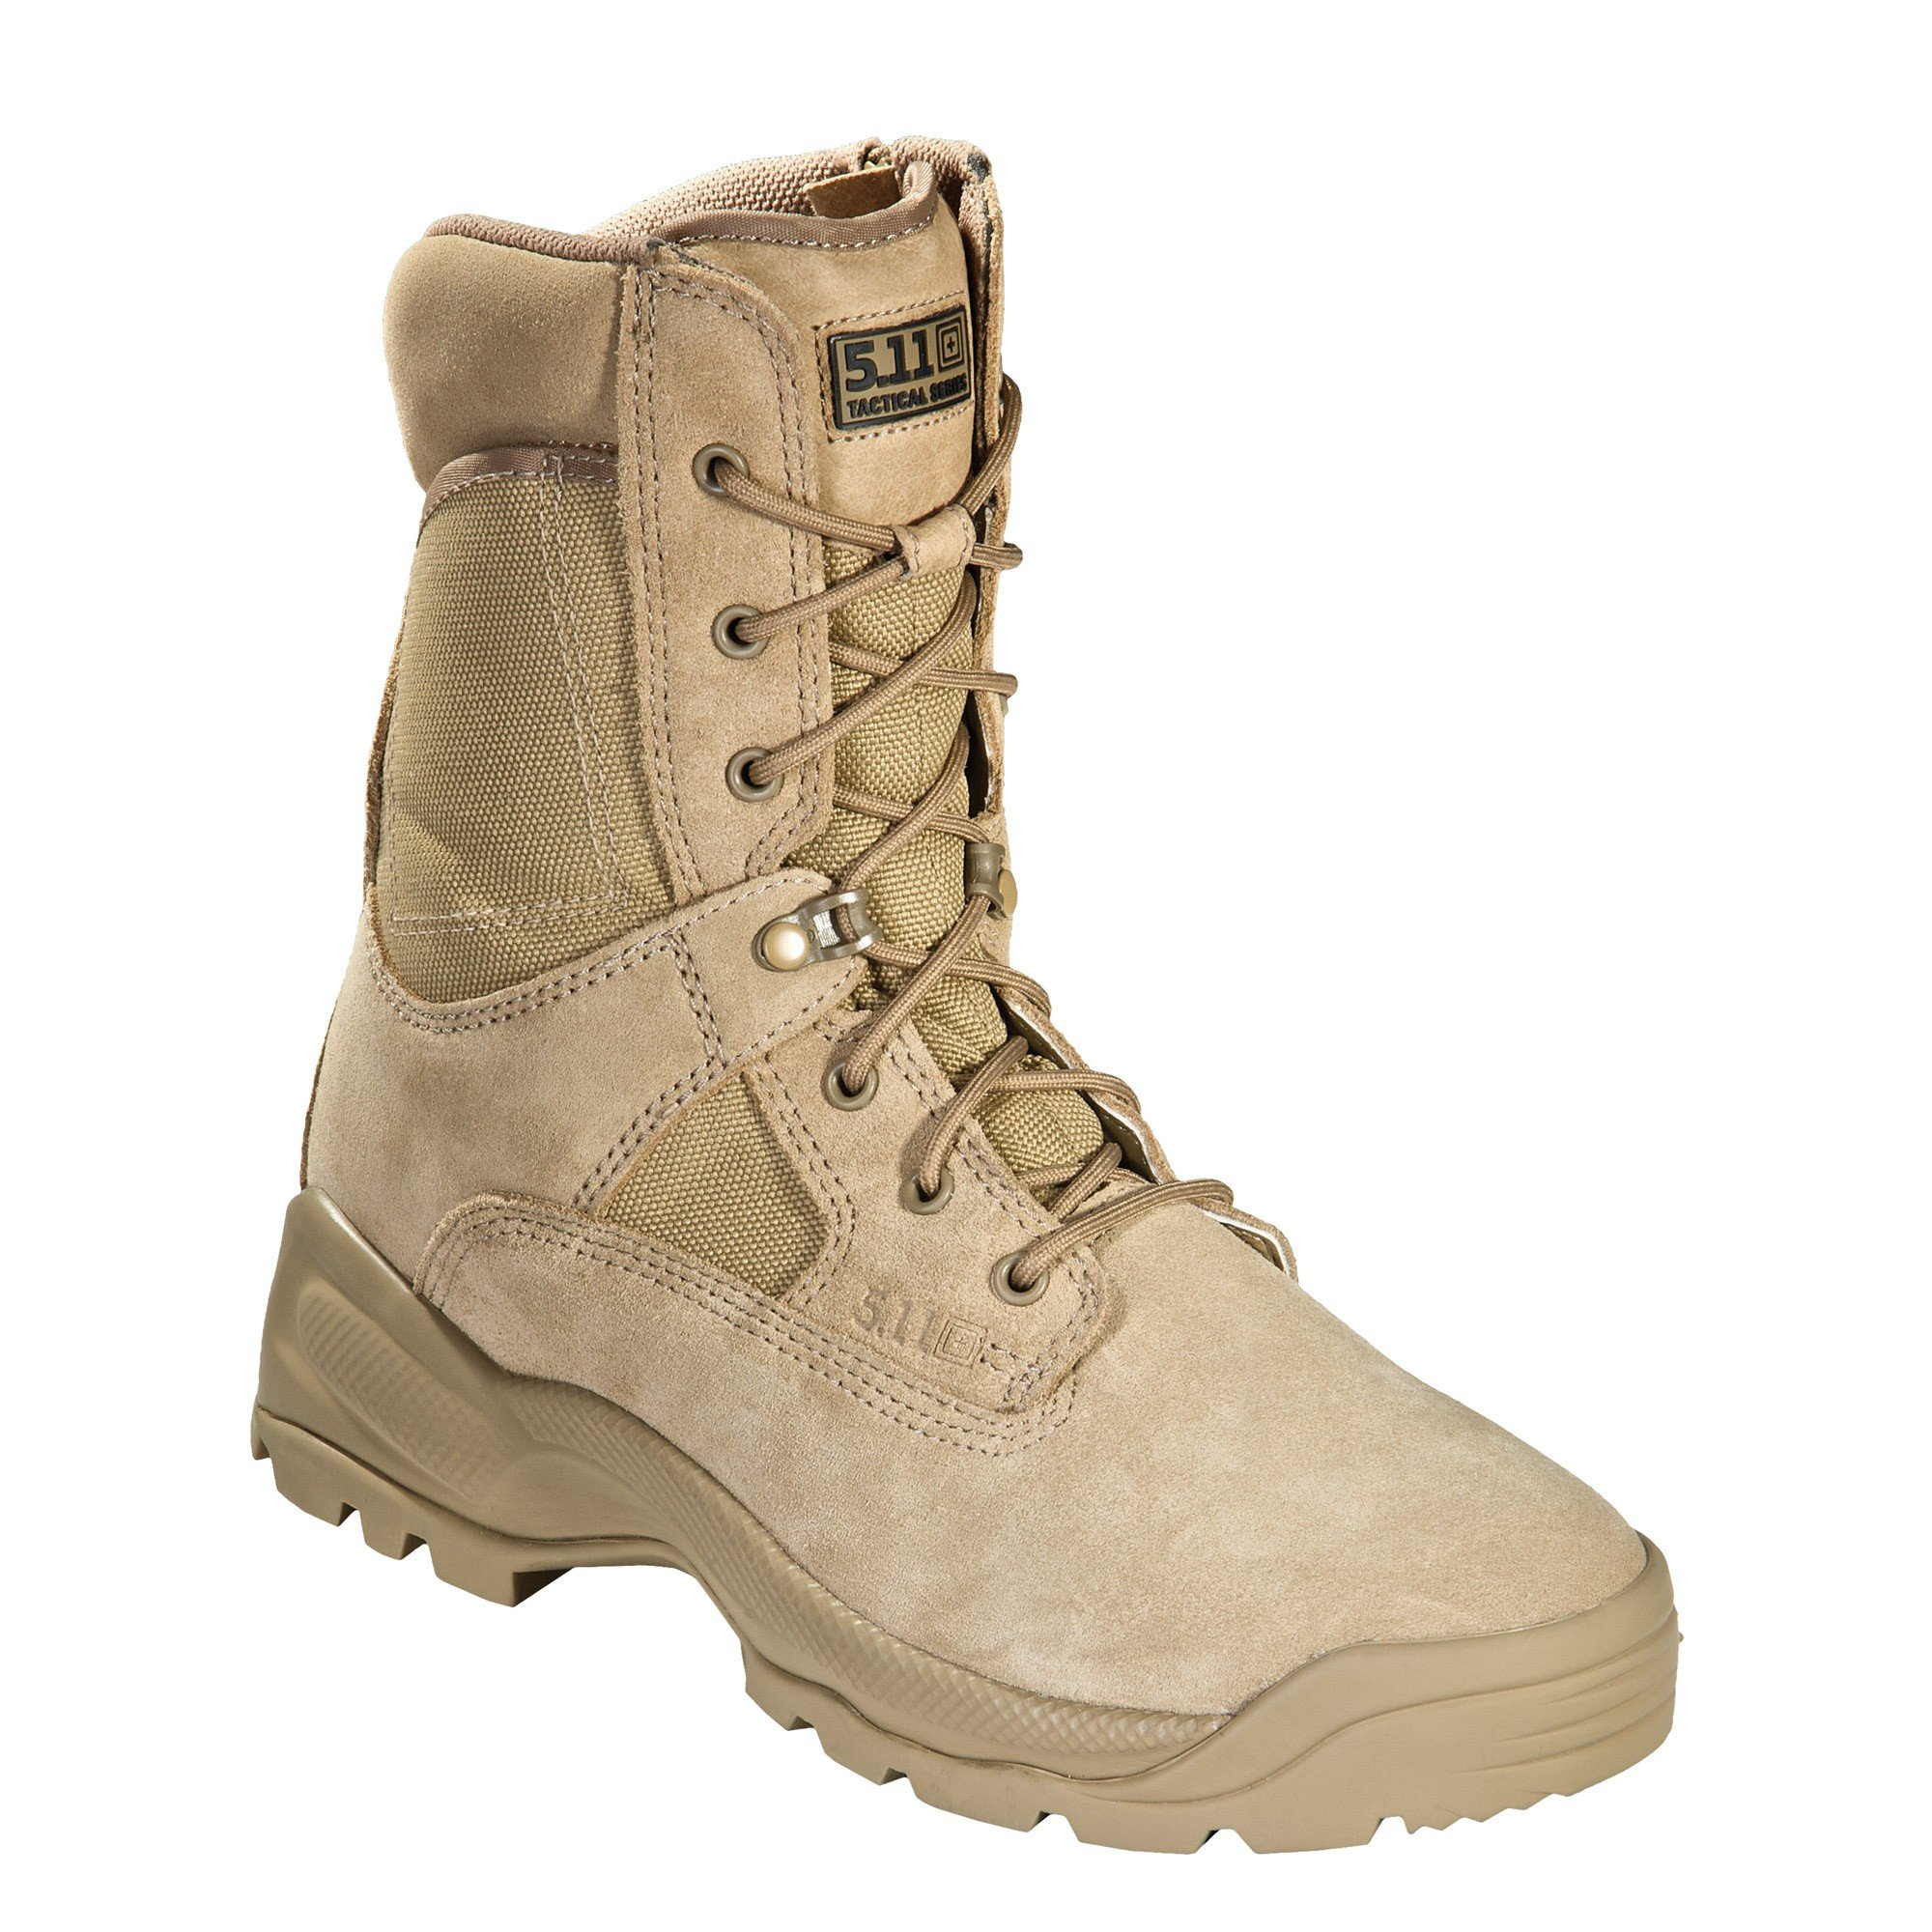 5.11 Tactical A.T.A.C. 8'' Boot, Coyote, 7 (W)